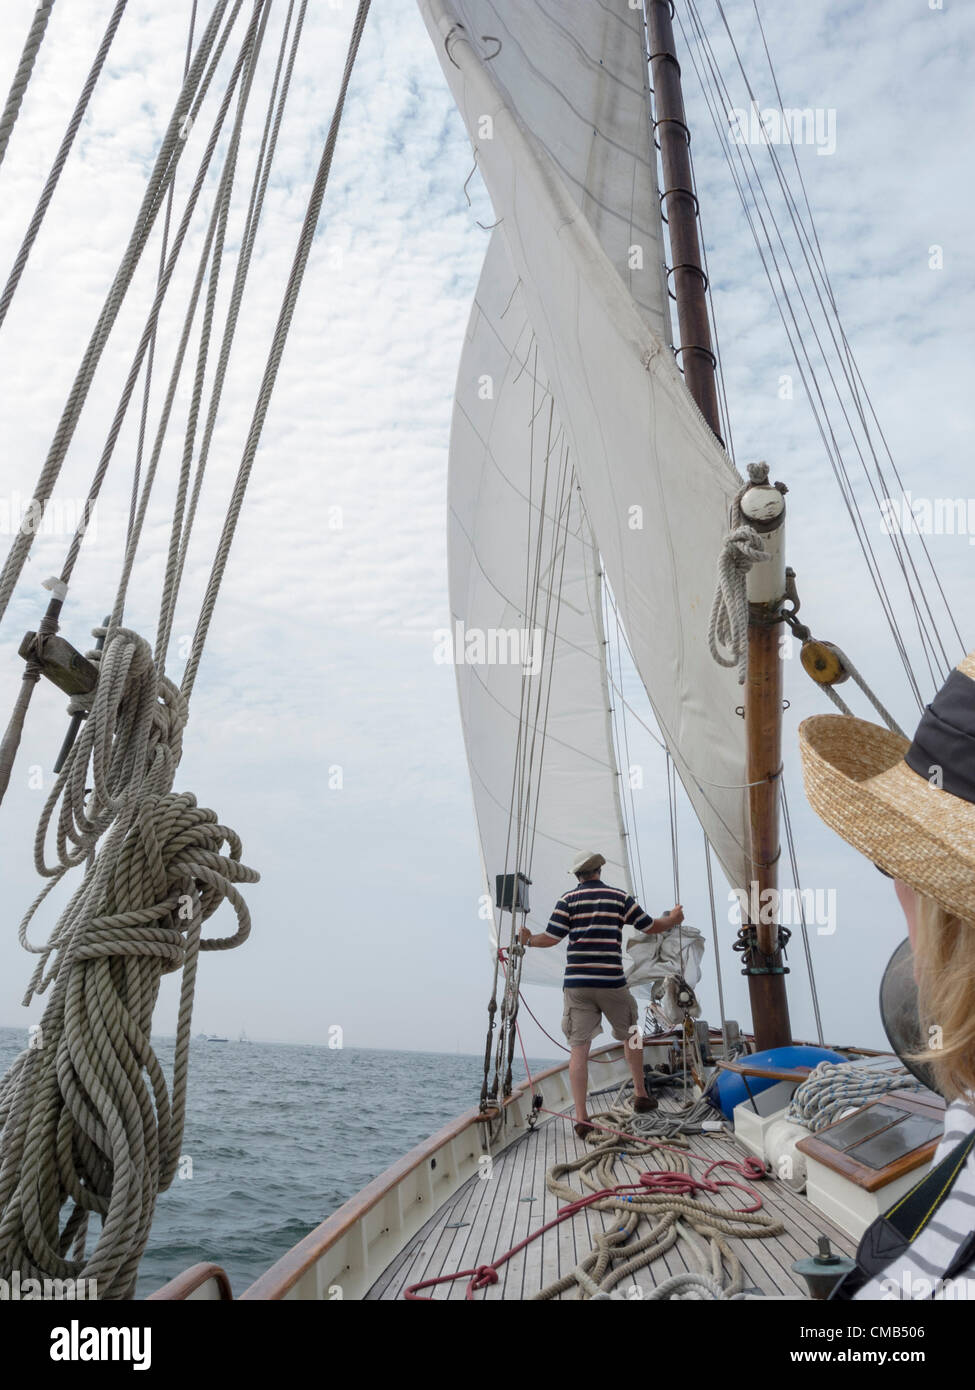 The Honorable Heather Somer, Mayor of Groton, Connecticut looks on as crew member Don Grinberg raises the sails - Stock Image